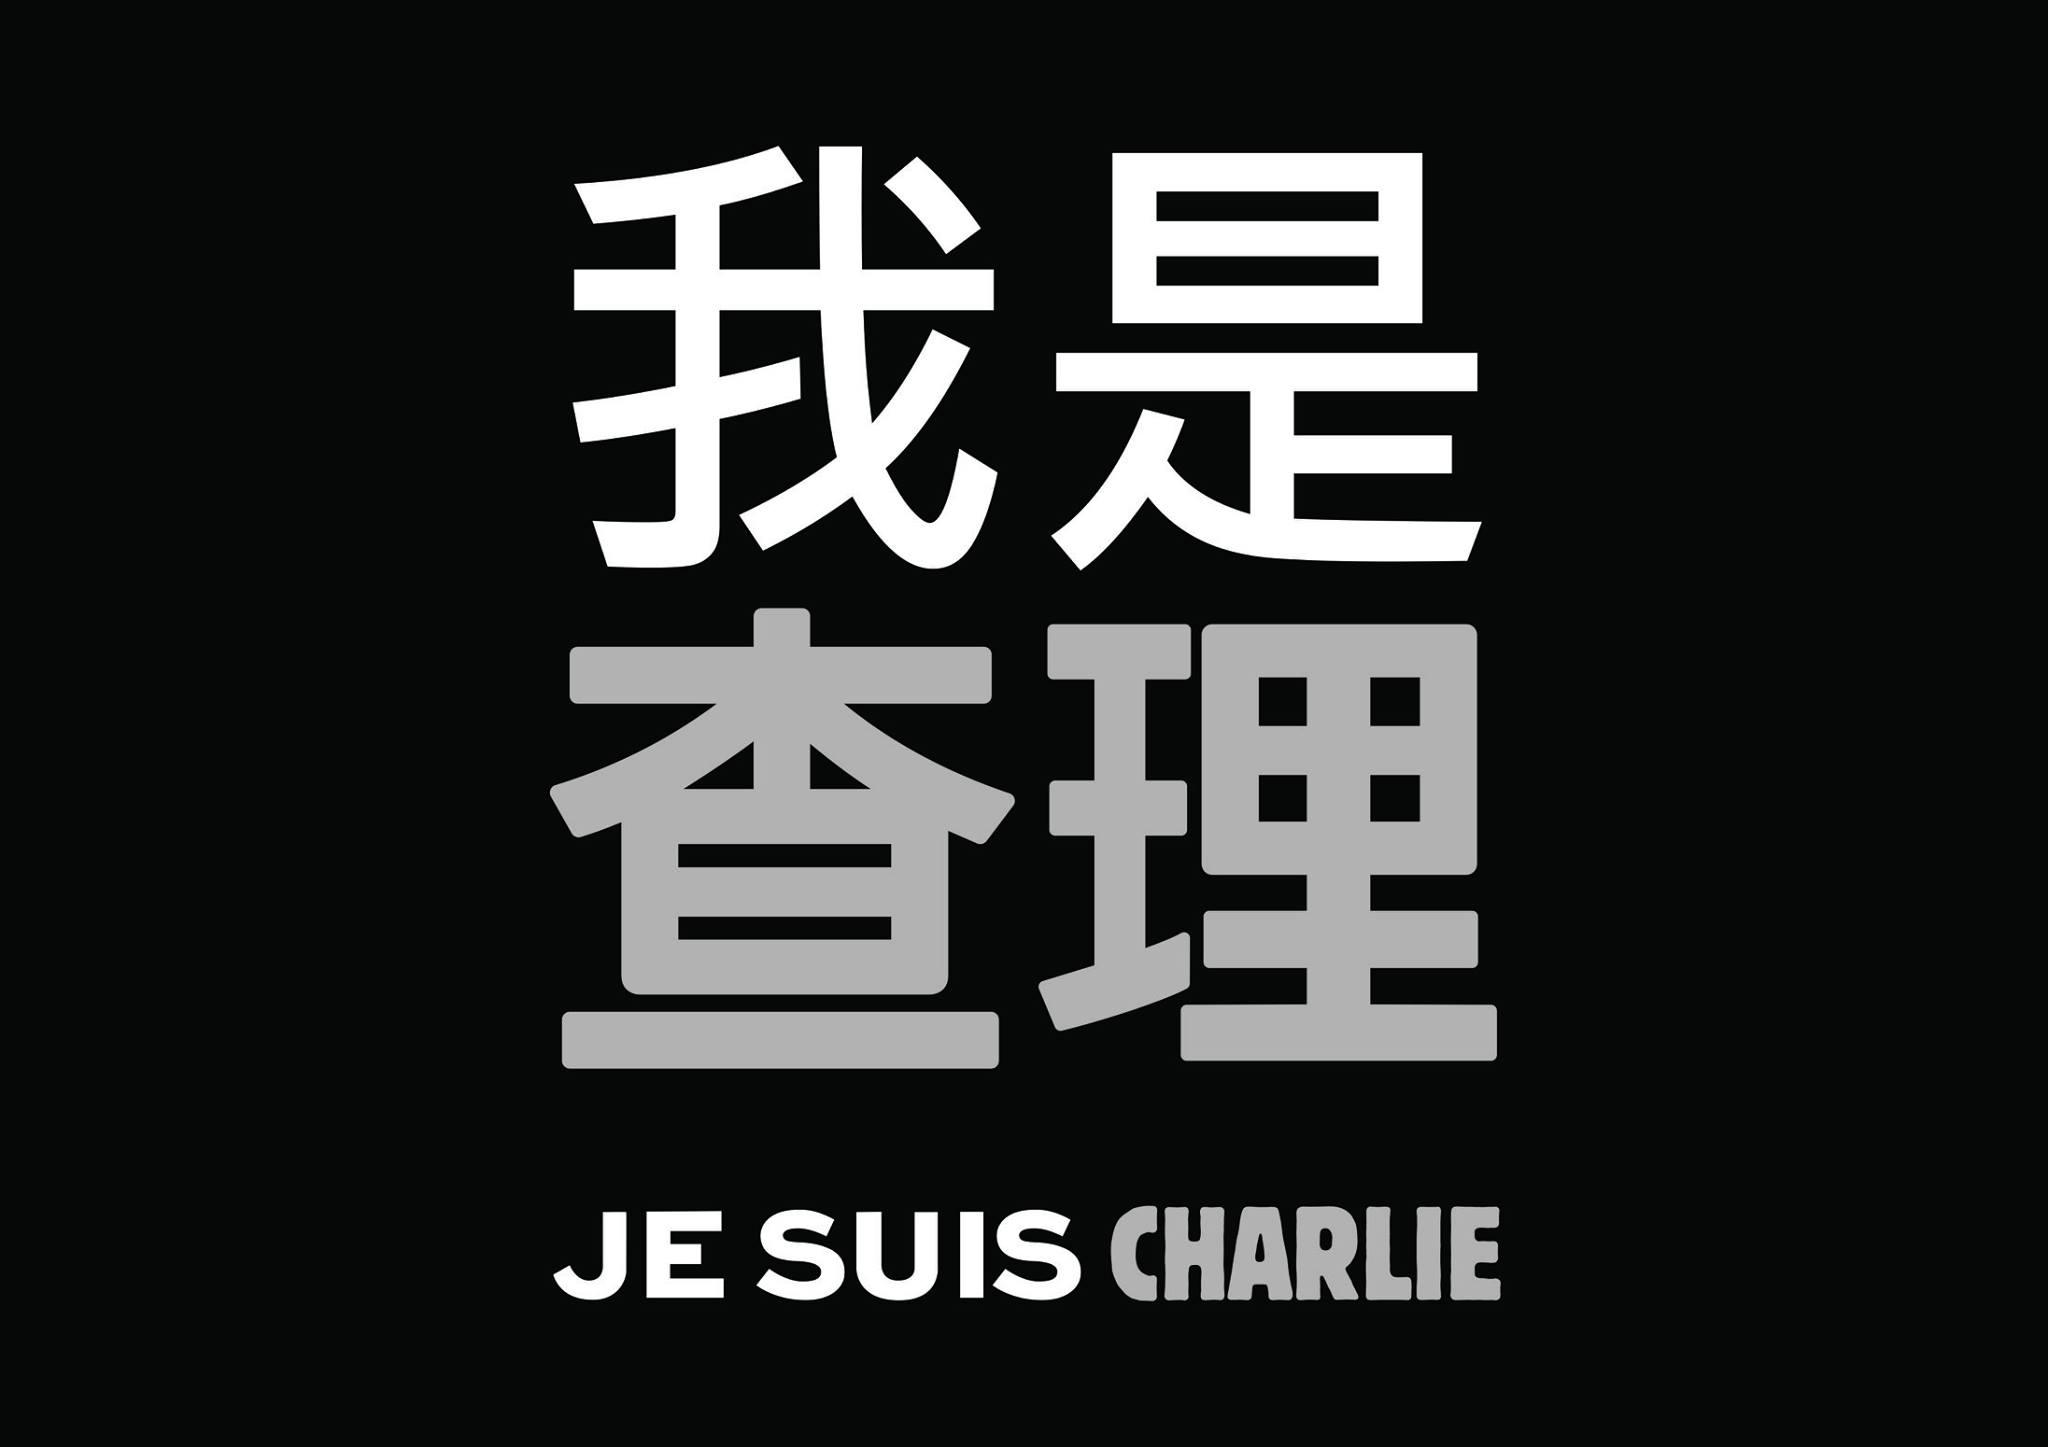 Drawing the News: Wo Shi Chali (Je Suis Charlie)